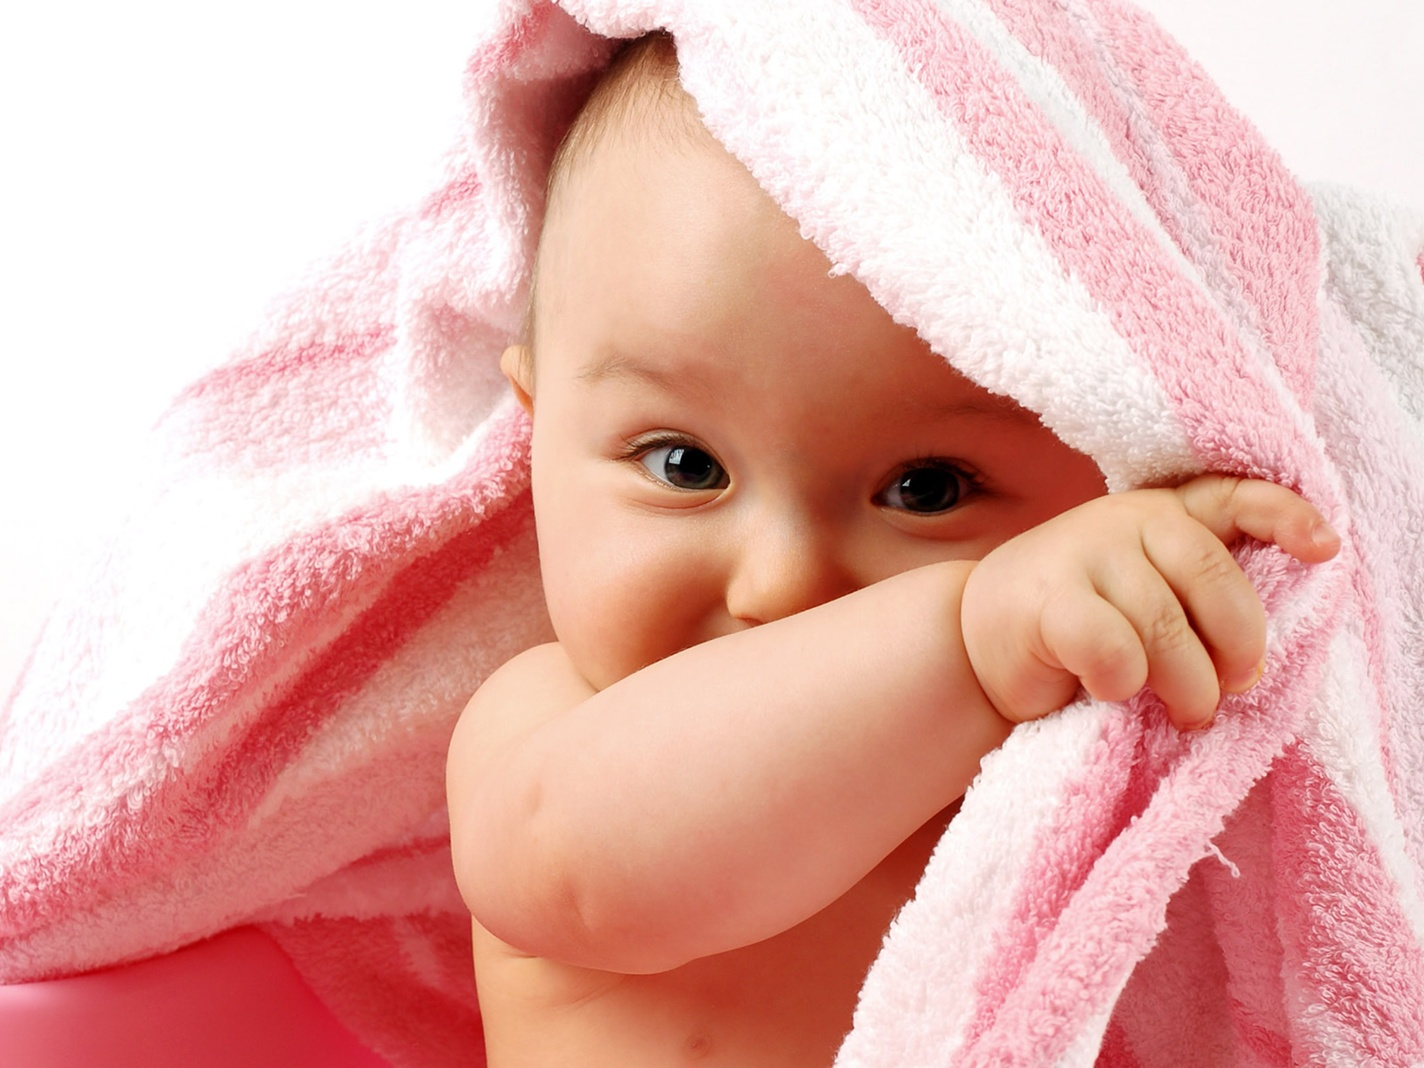 cute baby photos, download cute baby wallpapers, download free 1424x1068